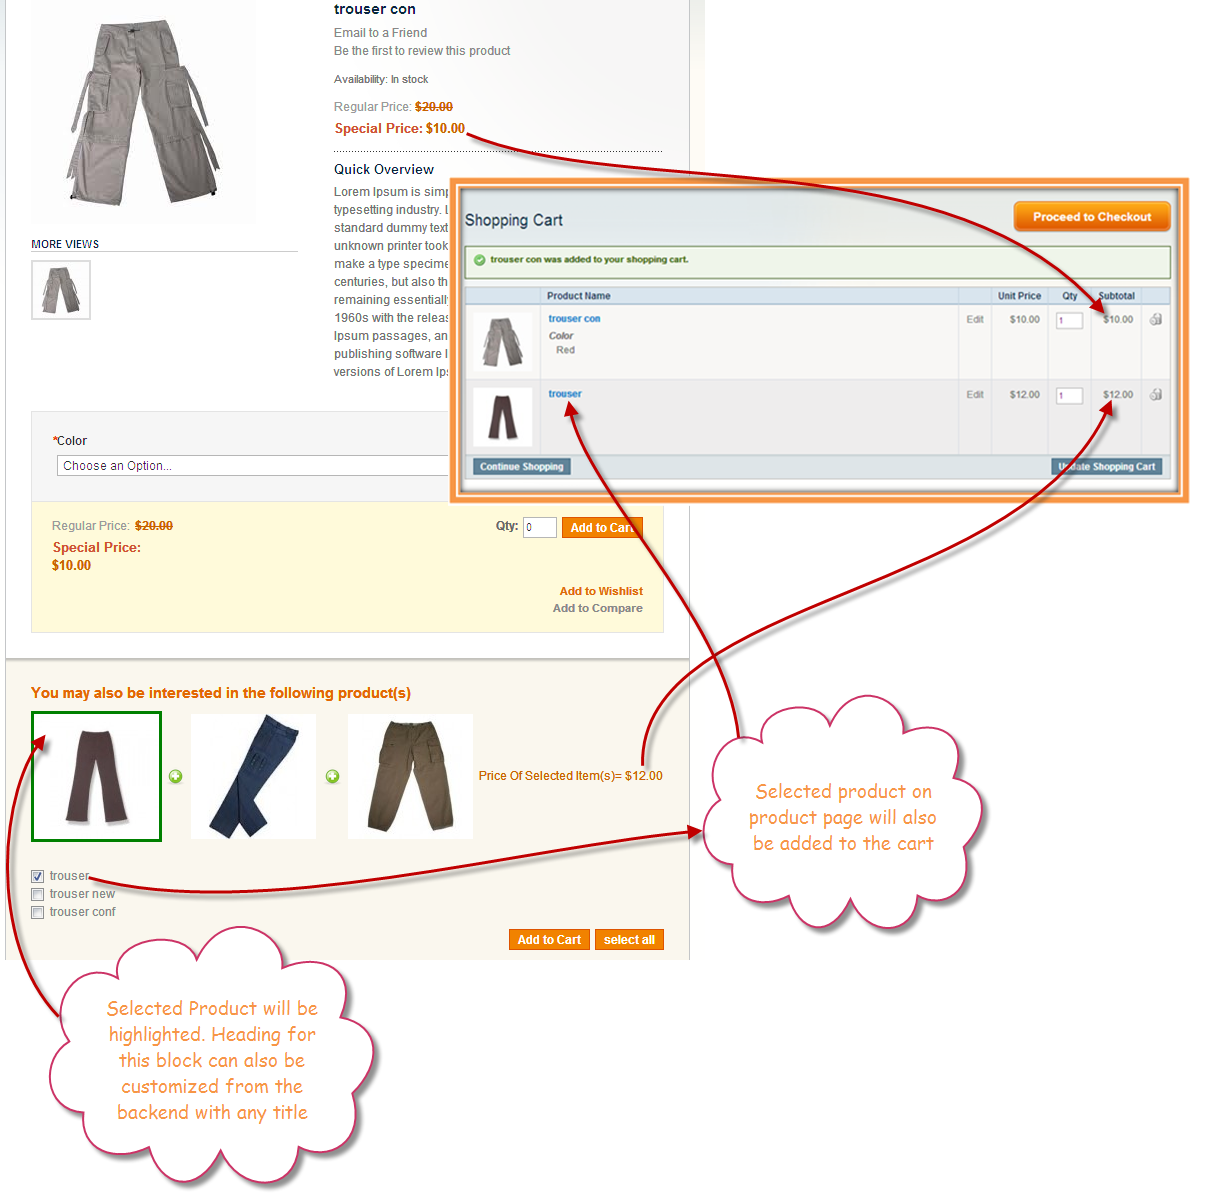 b37a2673ca Frequently Bought Together Magento Extension